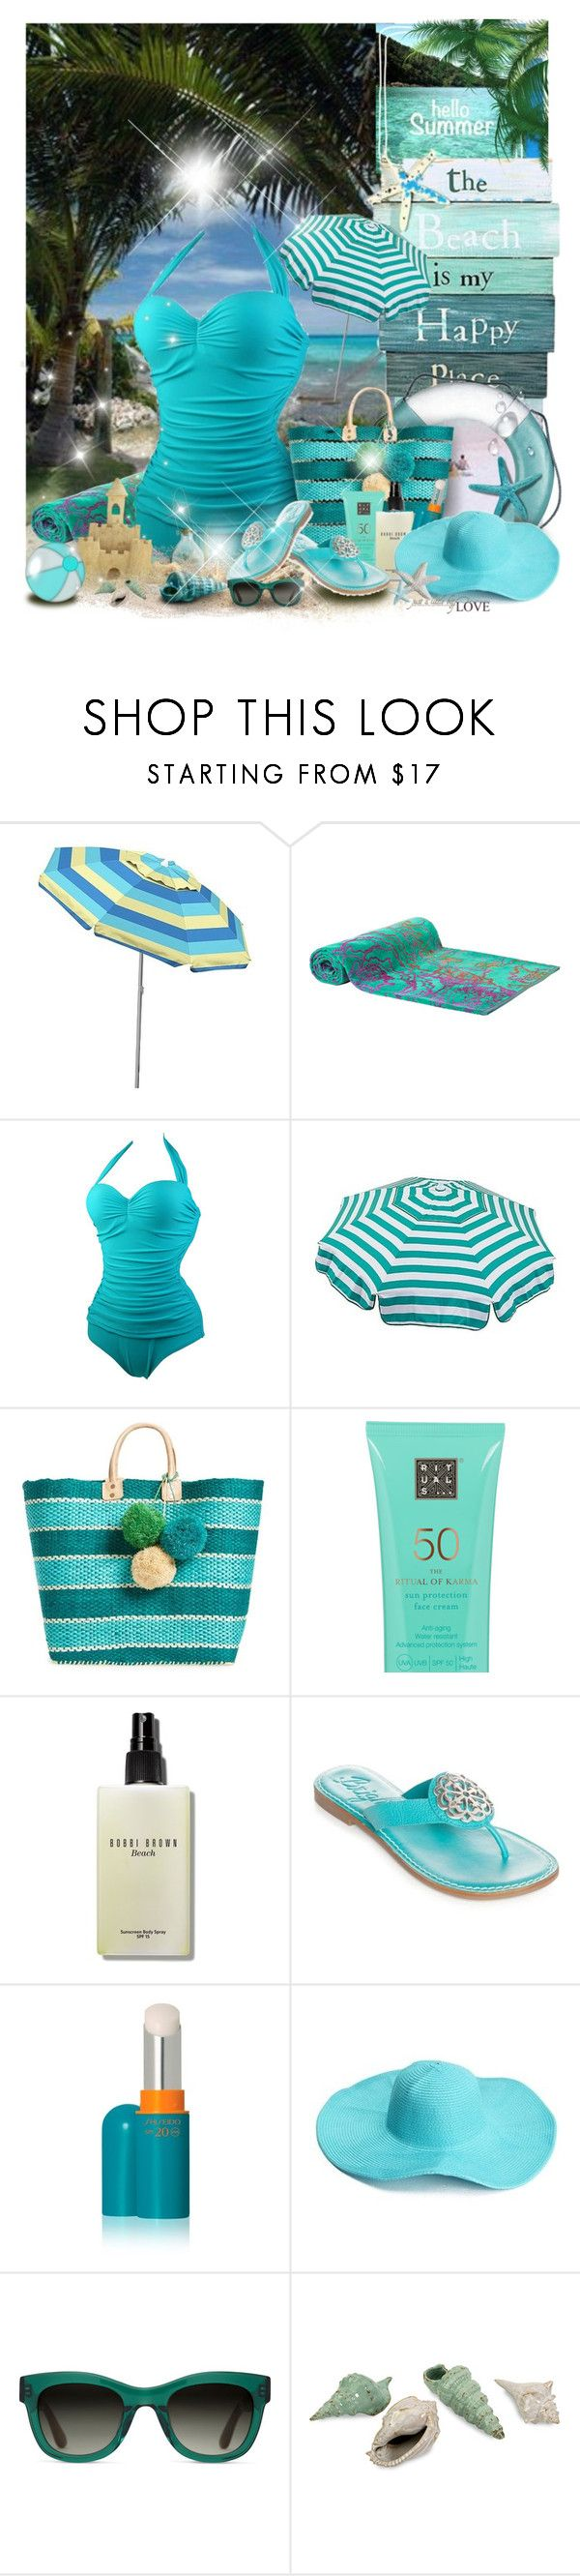 """The beach!👙"" by gianna-pellegrini ❤ liked on Polyvore featuring Caribbean Joe, Elaiva, Parasol, Mar y Sol, Bobbi Brown Cosmetics, Brighton, Shiseido and TOMS"